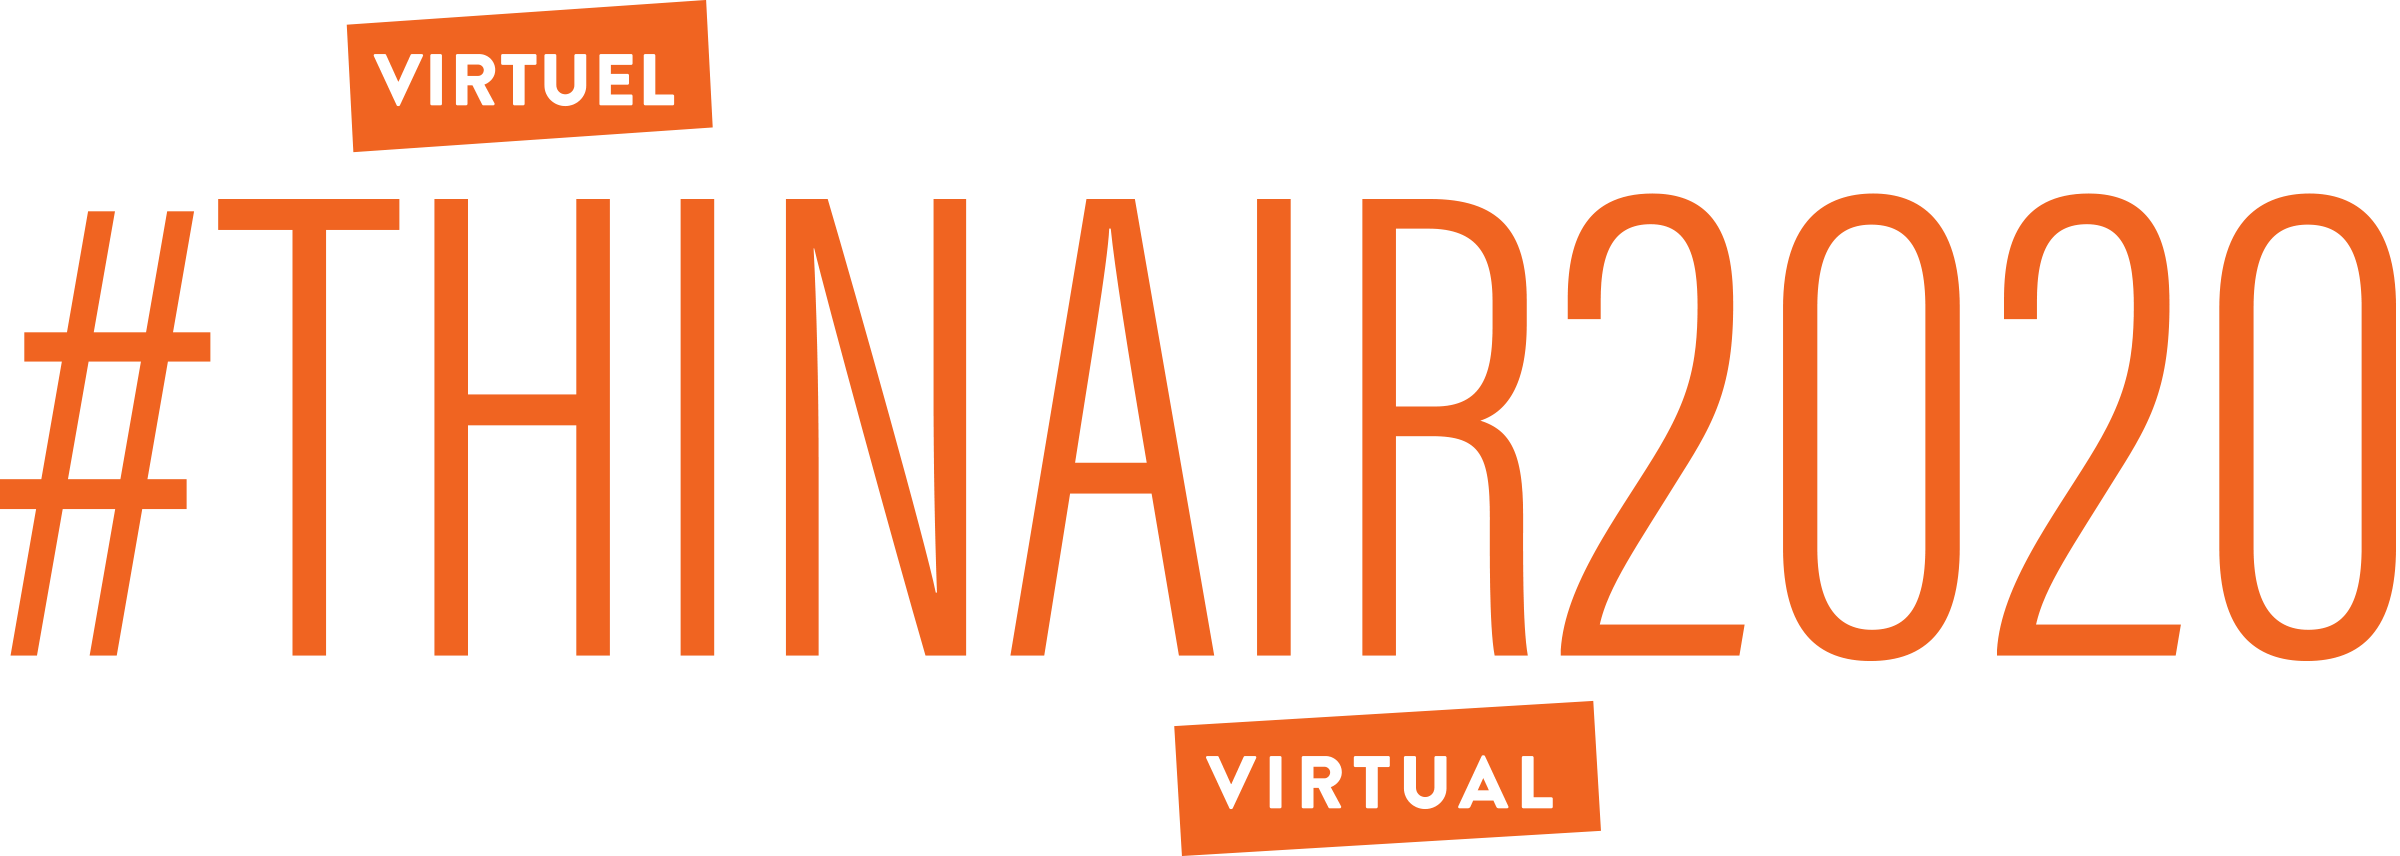 thin air winnipeg international writers festival international ecrivains event wordmark